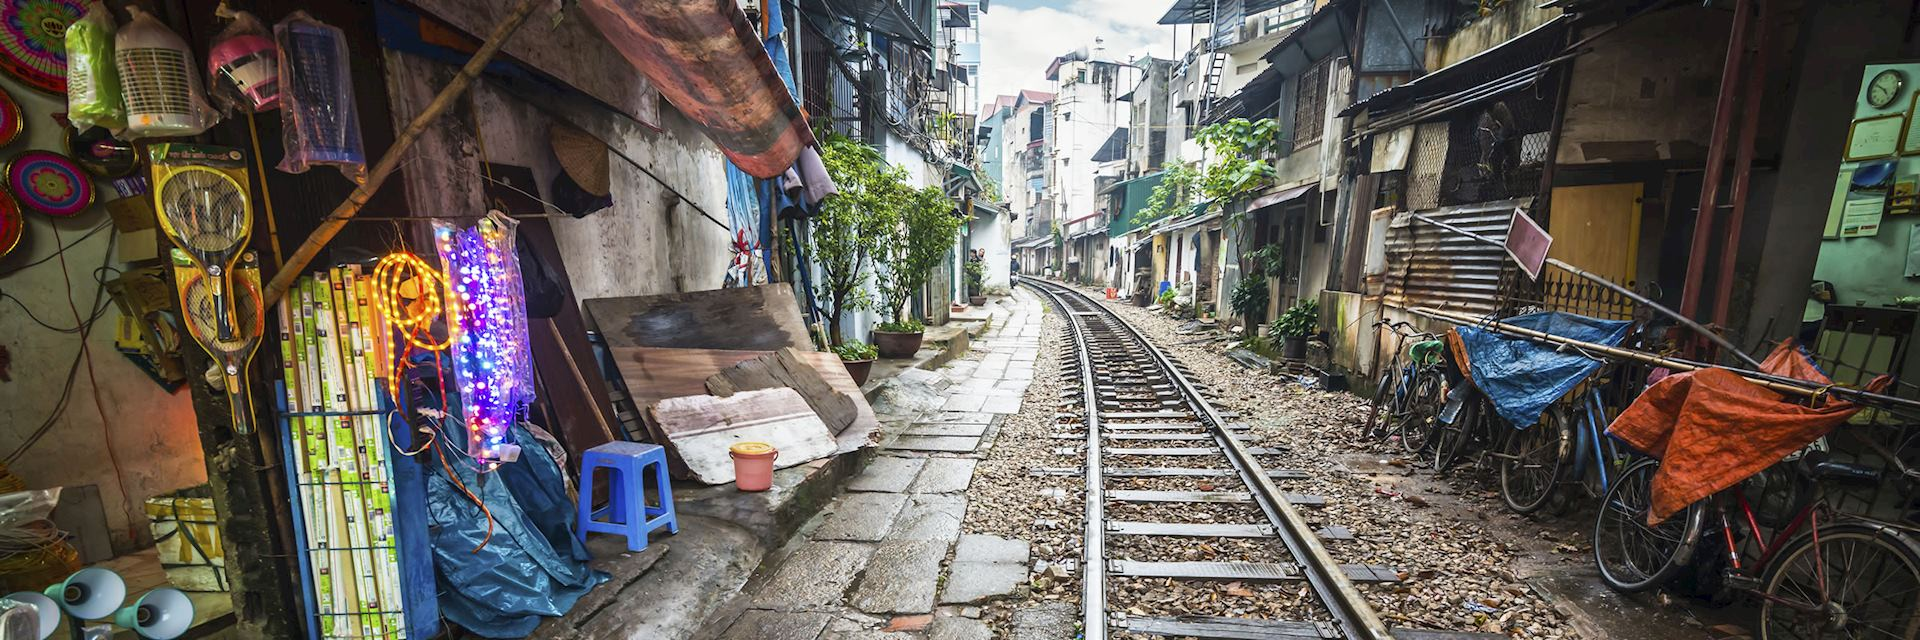 Rail line running through part of Hanoi